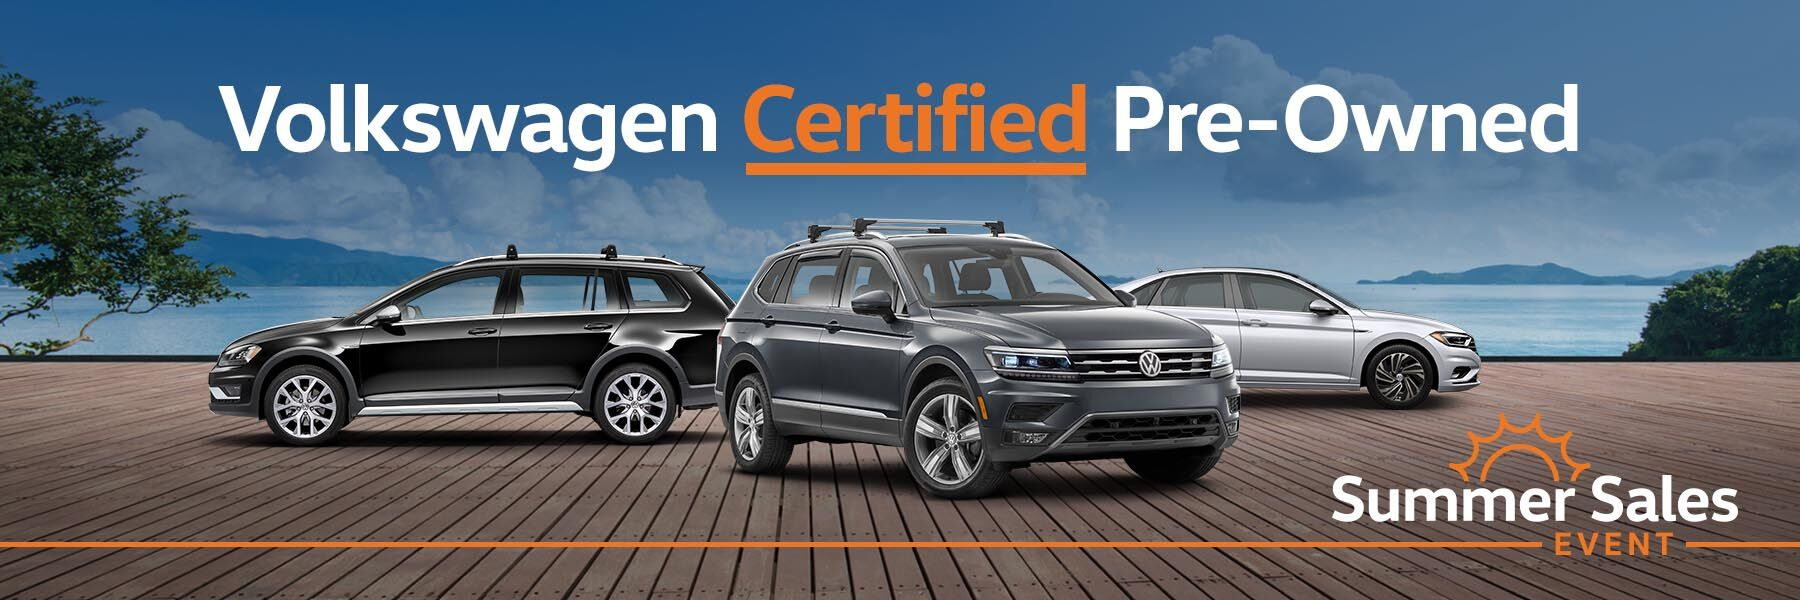 Volkswagen Certified Pre-Owned in Lincoln, NE